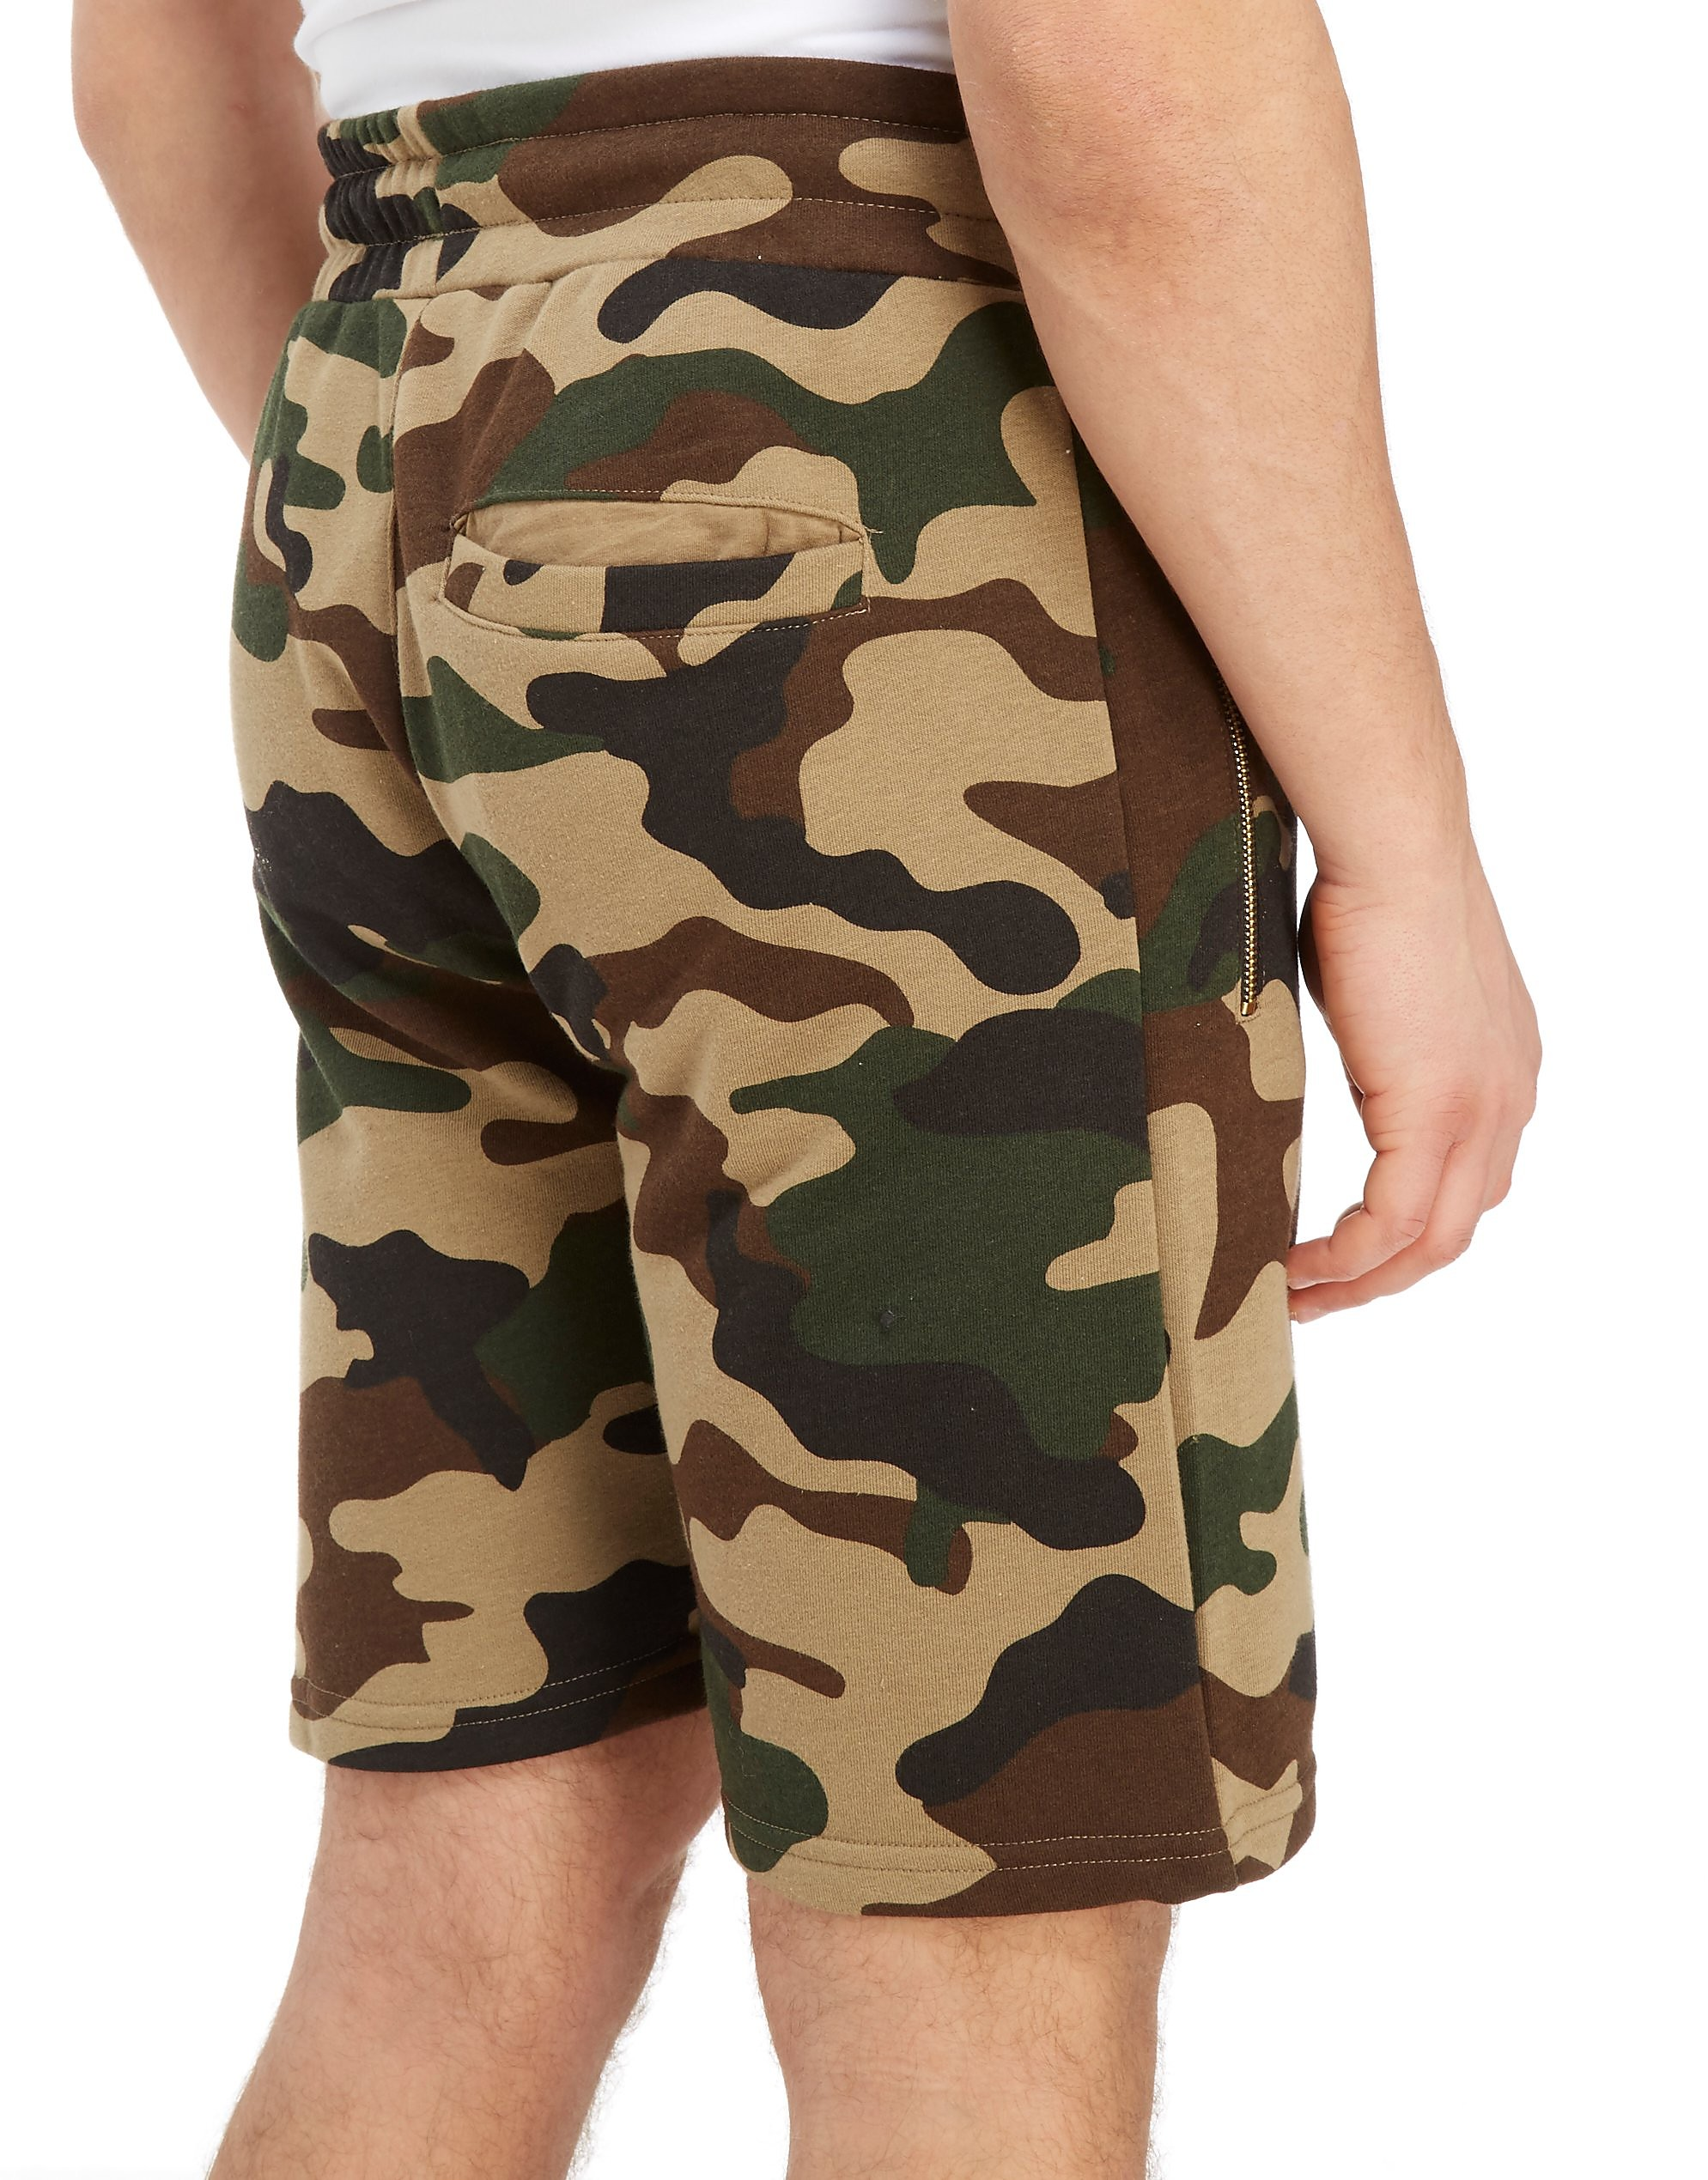 Supply & Demand Nova Loop Shorts